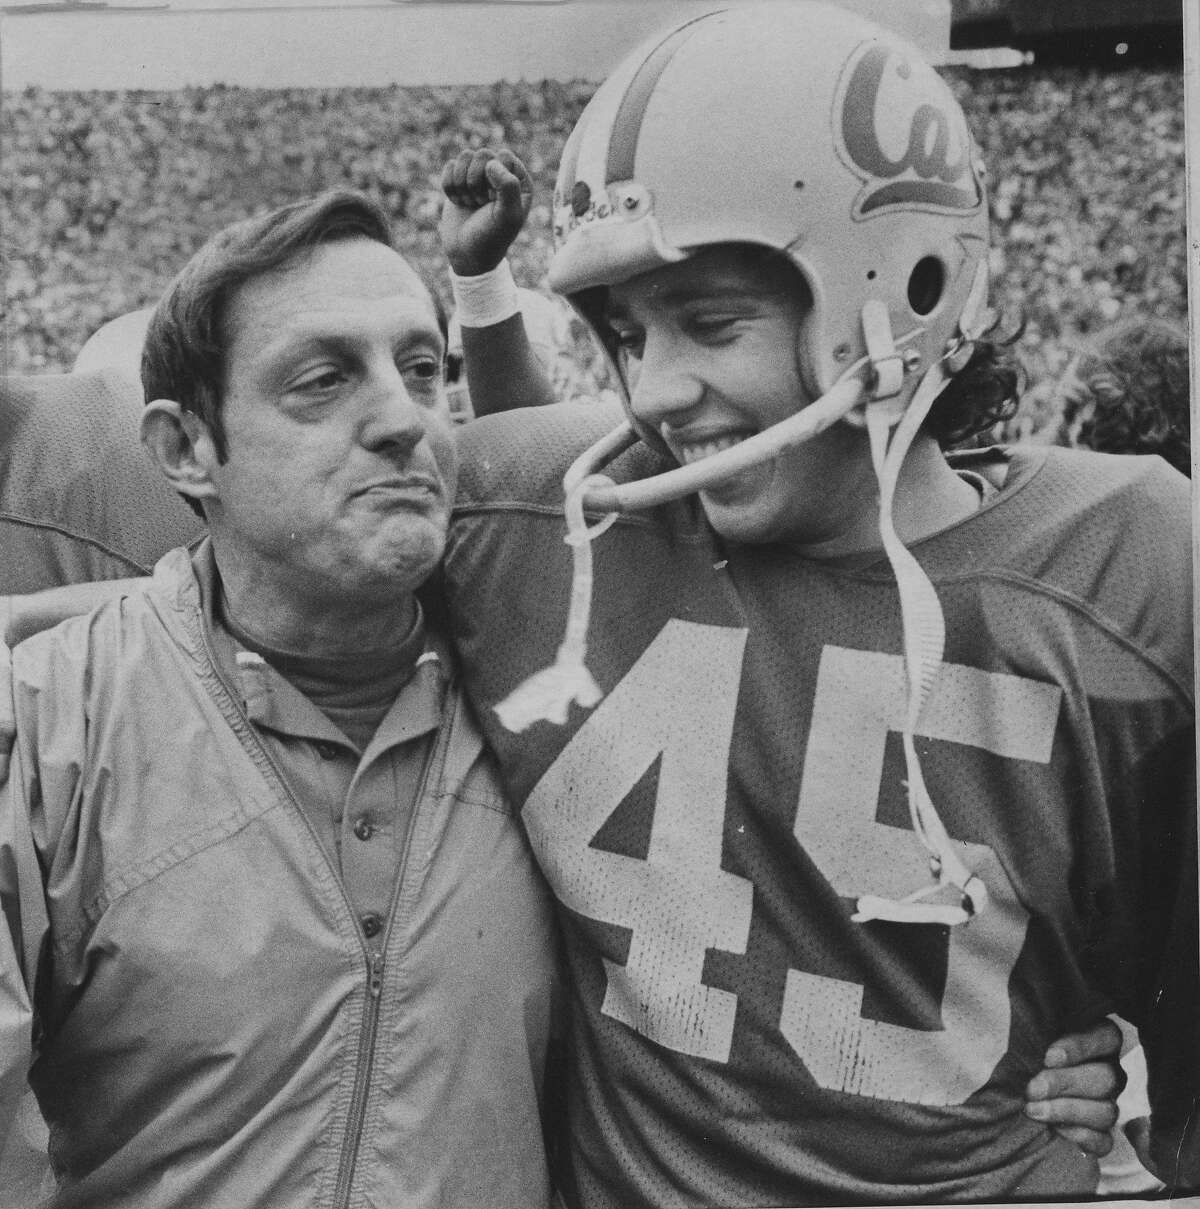 Cal football coach Roger Theder and kicker Mick Luckhurst after Cal won the Big game 11/22/1980 Photo ran 11/24/1980, p. 59